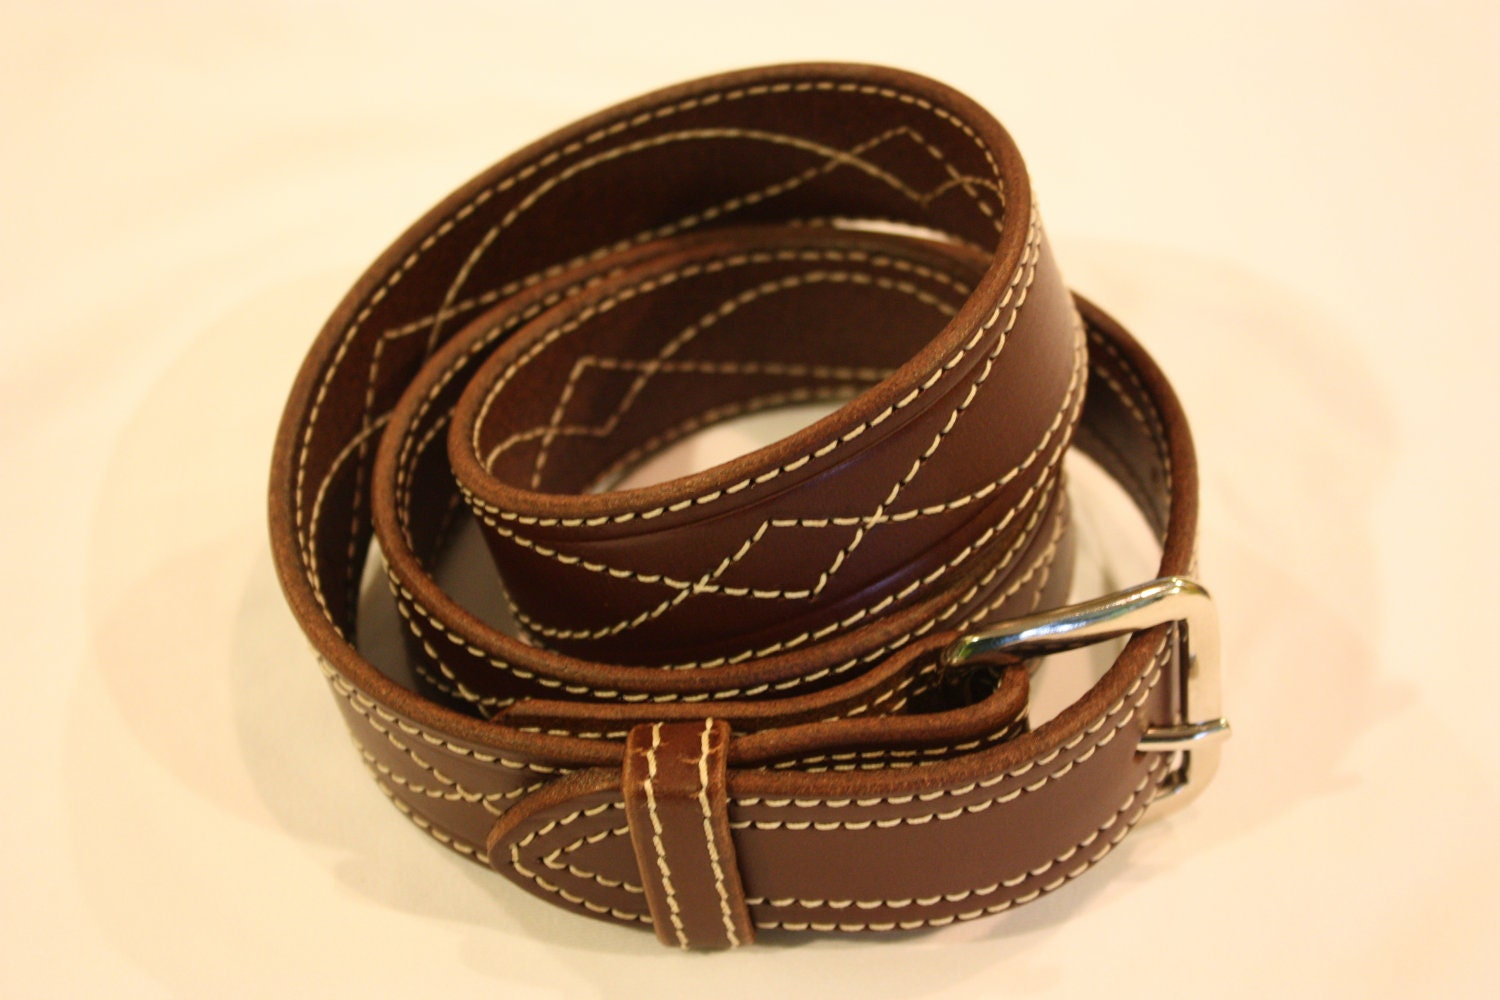 36 amish made leather belt with decorative by